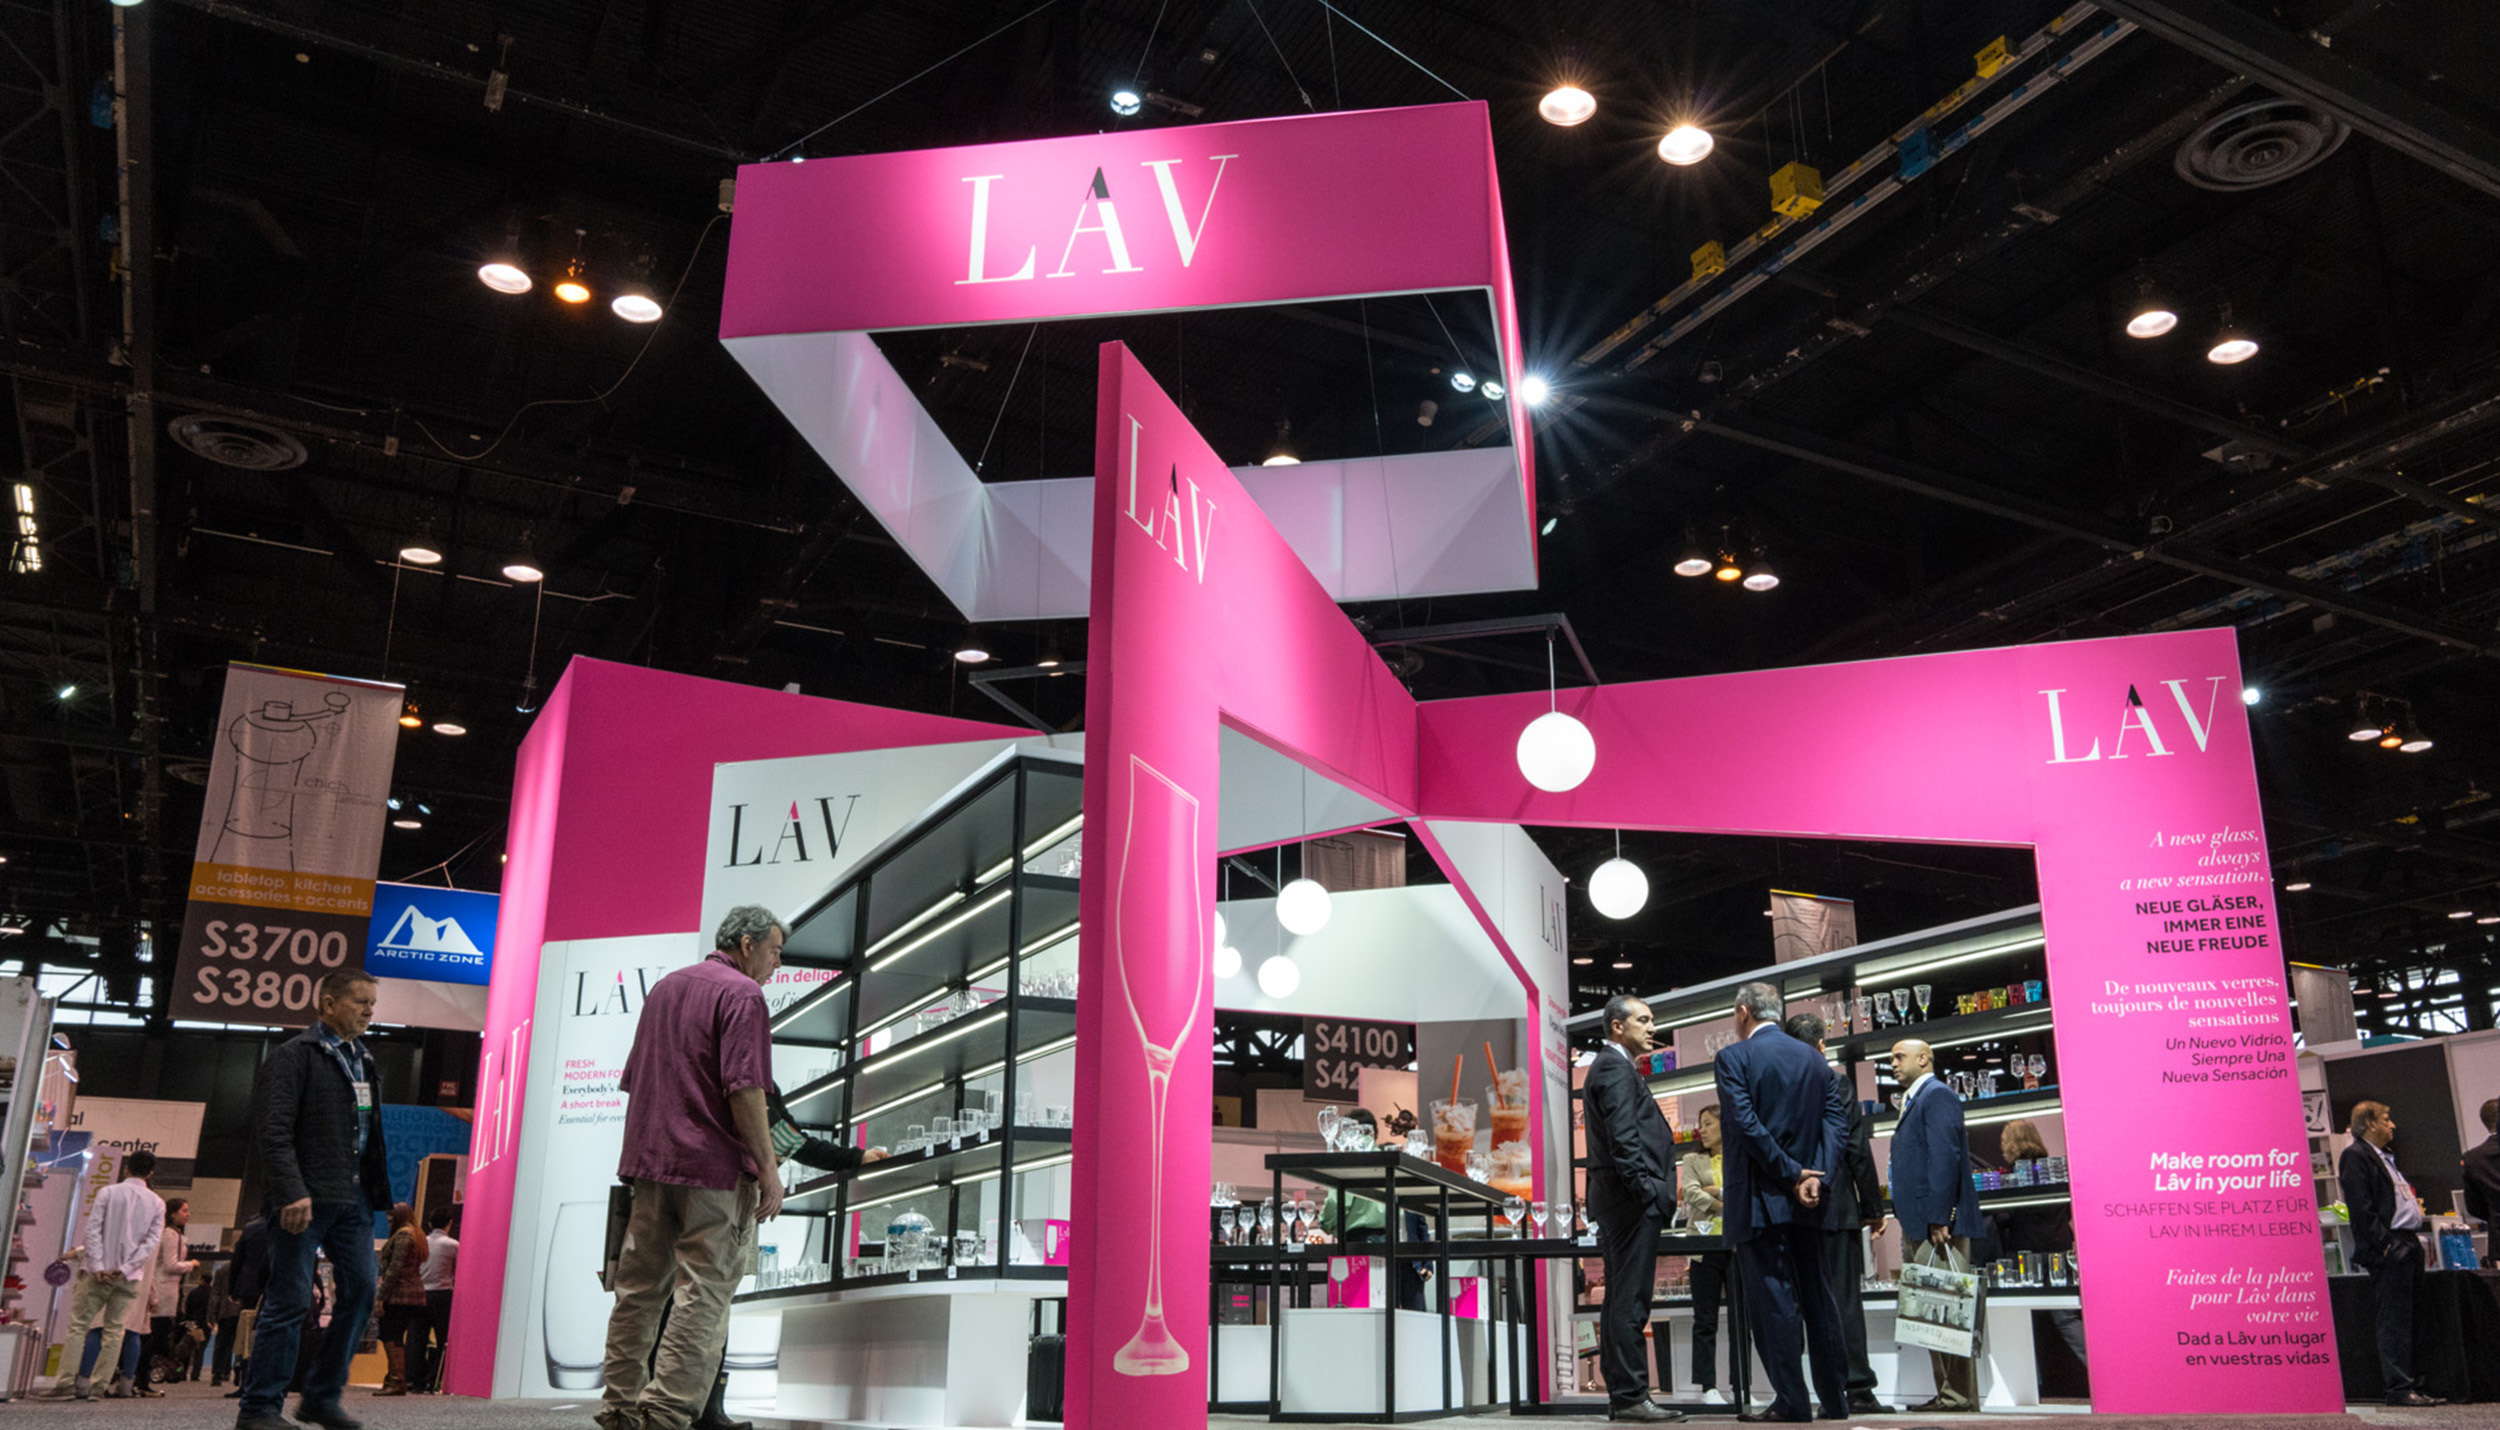 Checklist For Exhibition Booth : Exhibit booth tips to make your brand the center of attention